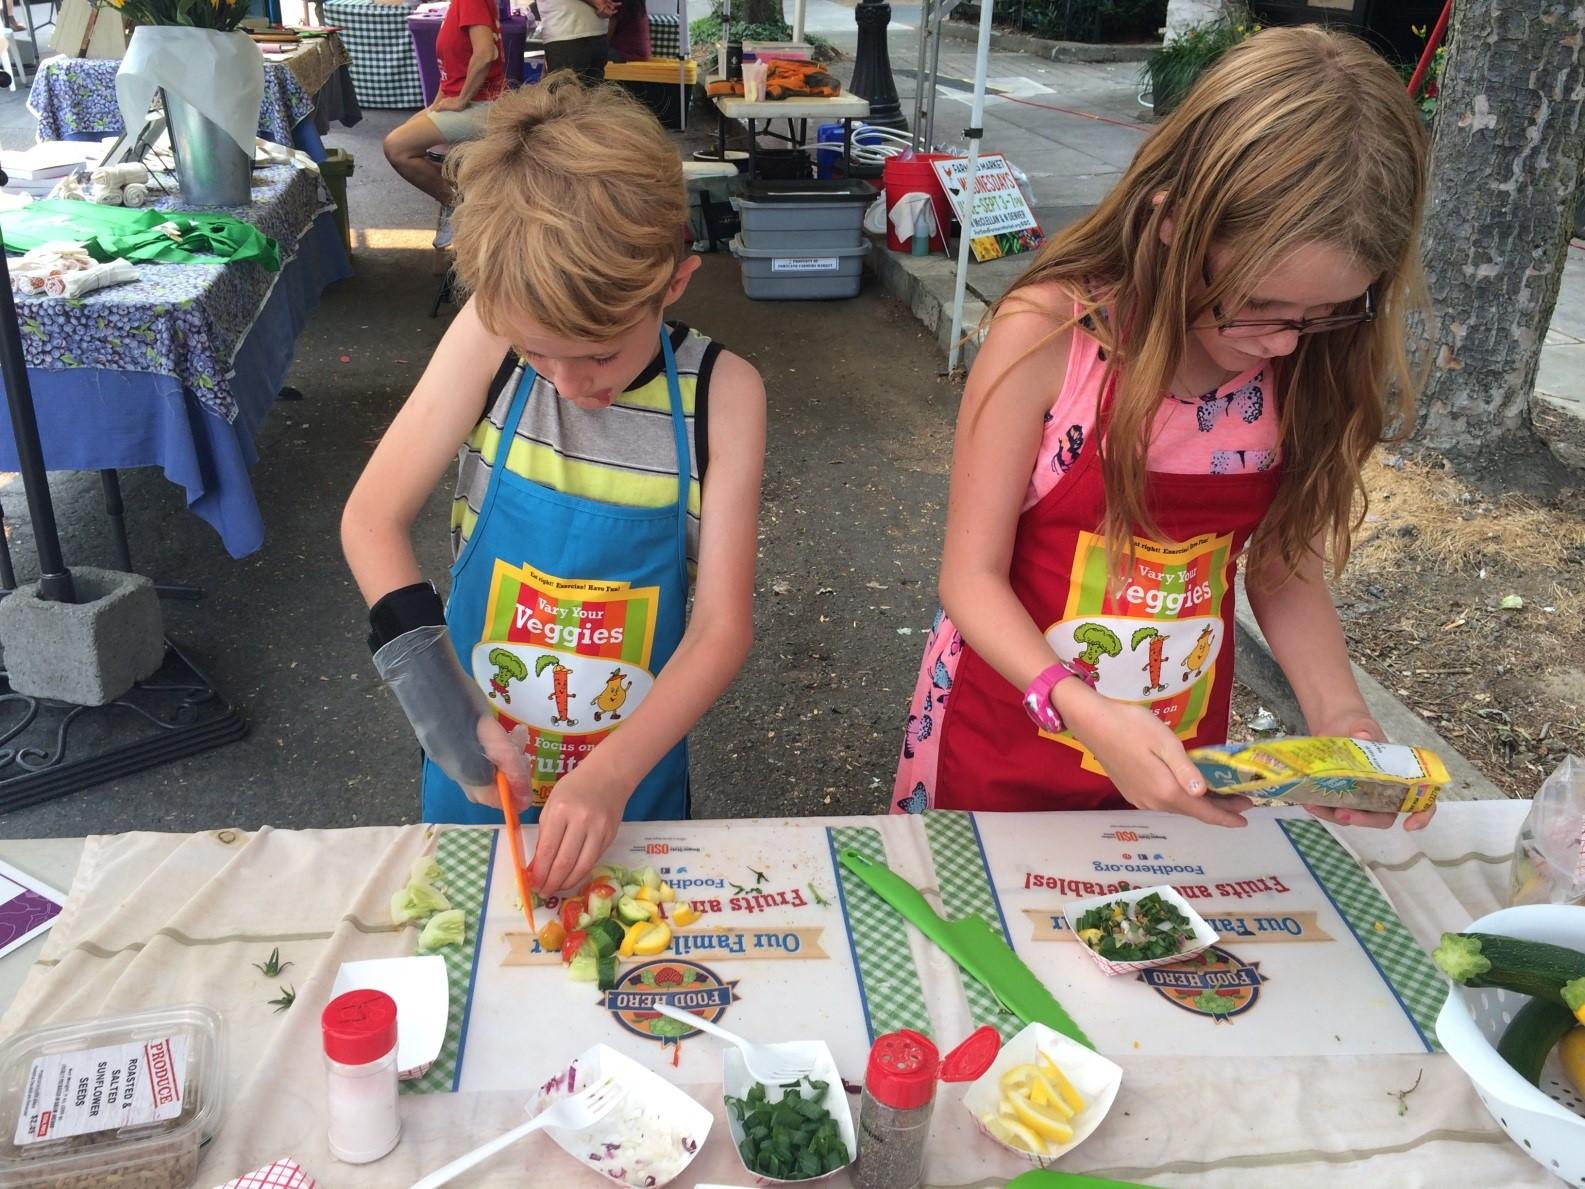 Cutting Vegetables at the Farmers Market